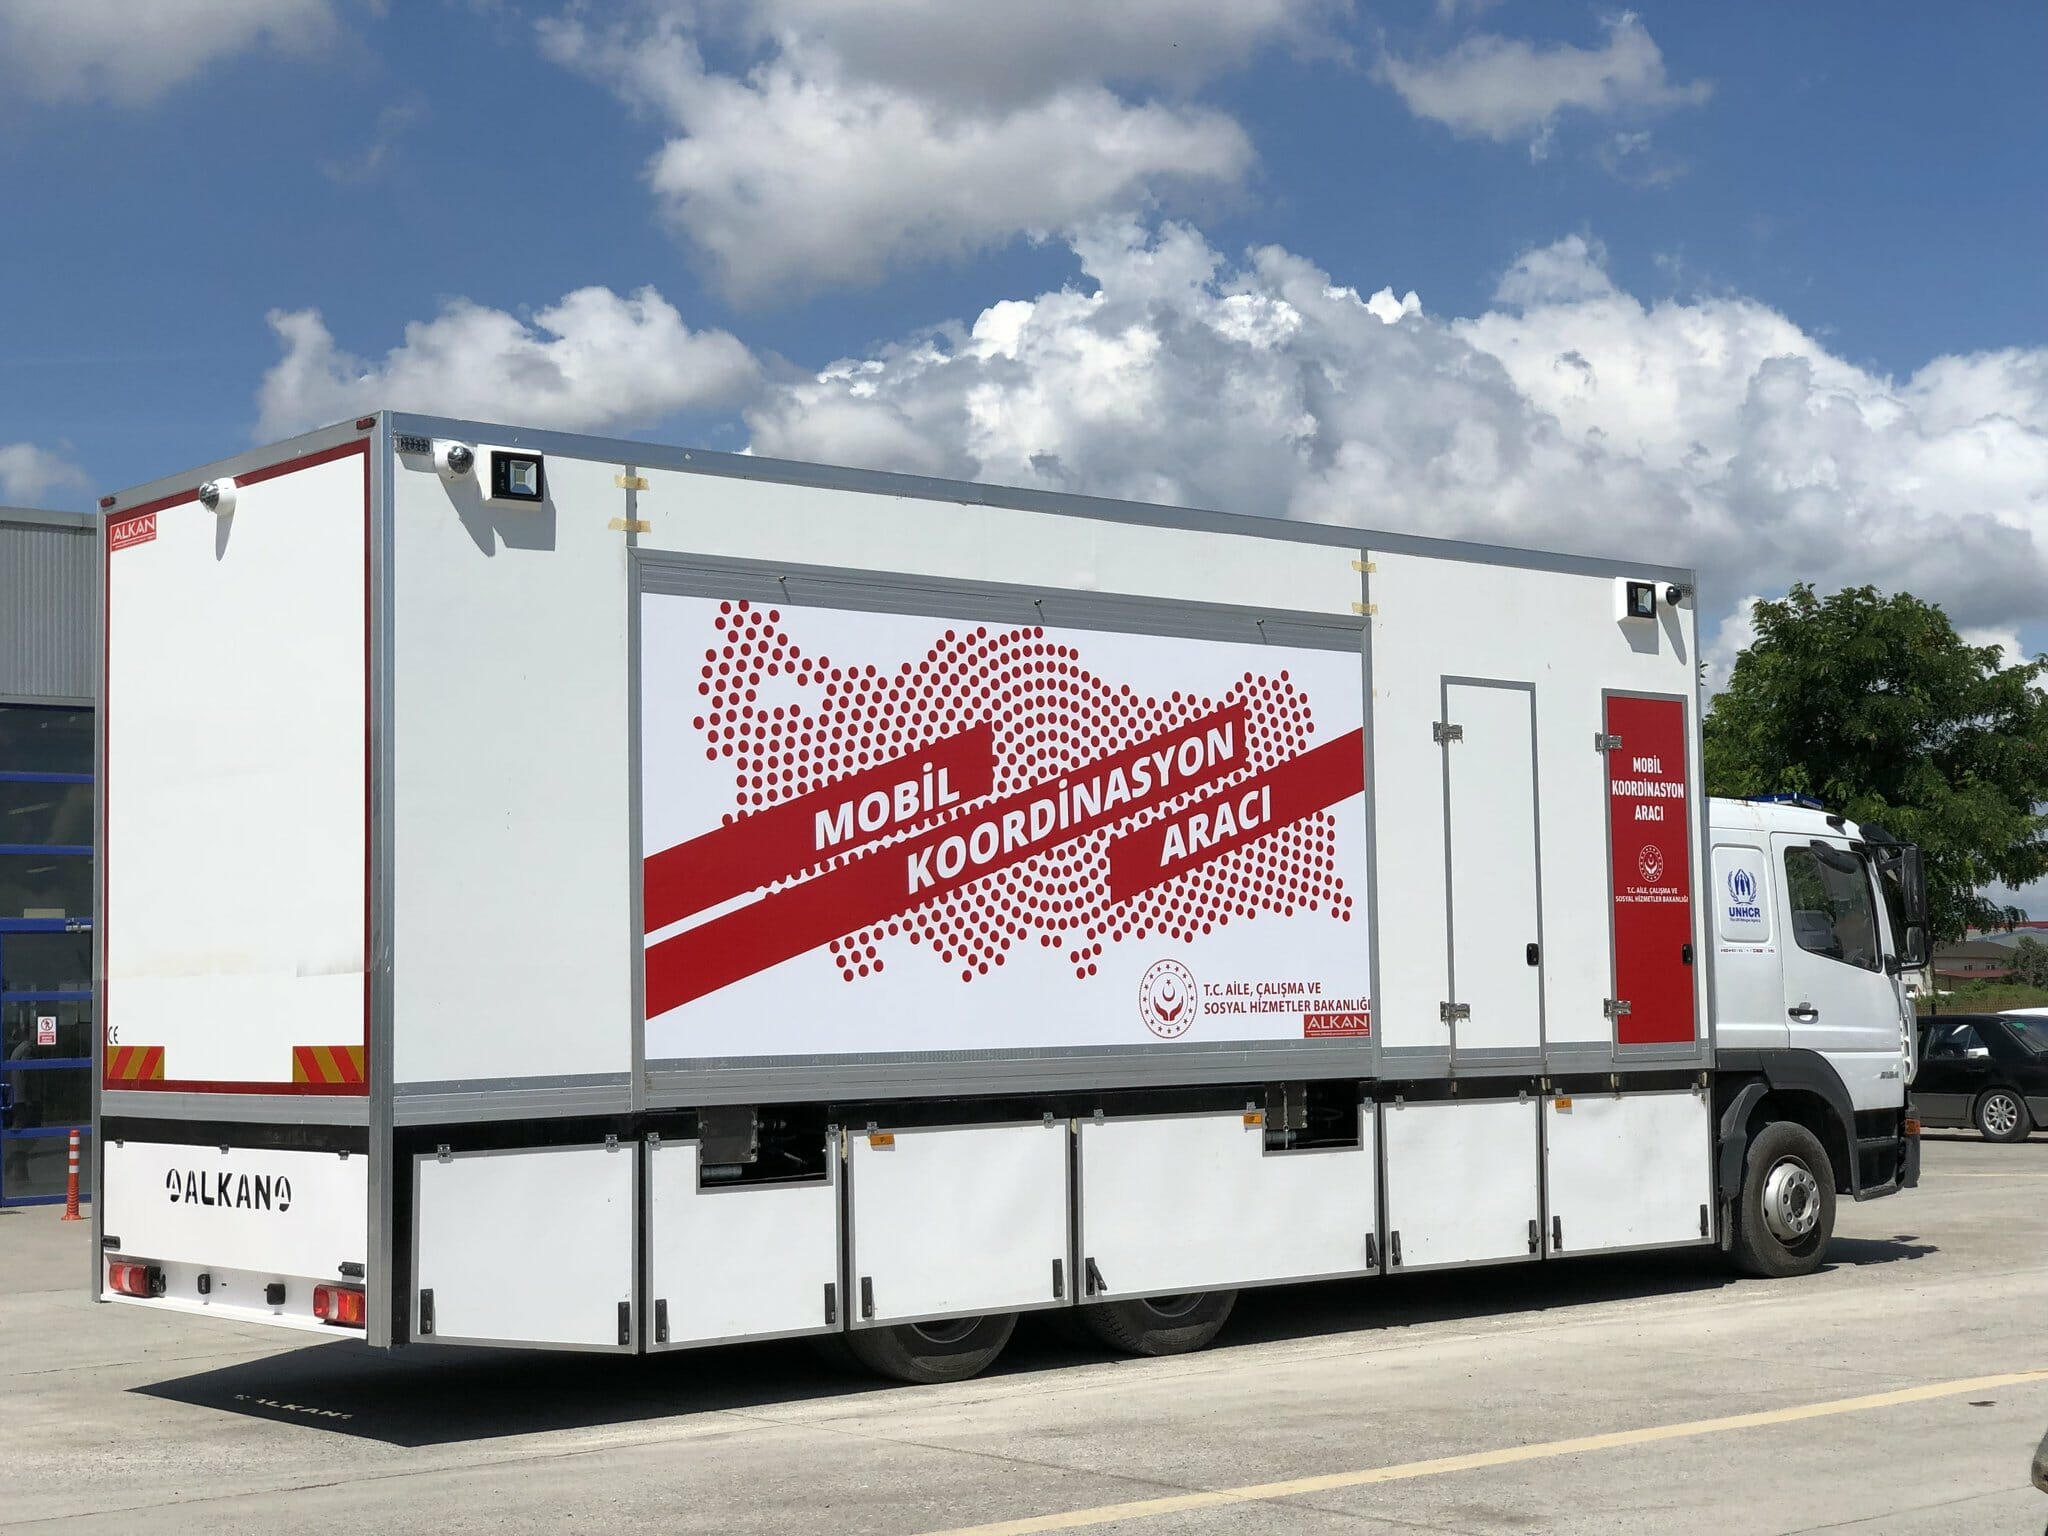 Mobile Coordination Vehicle Trailers of 2019 Delivered